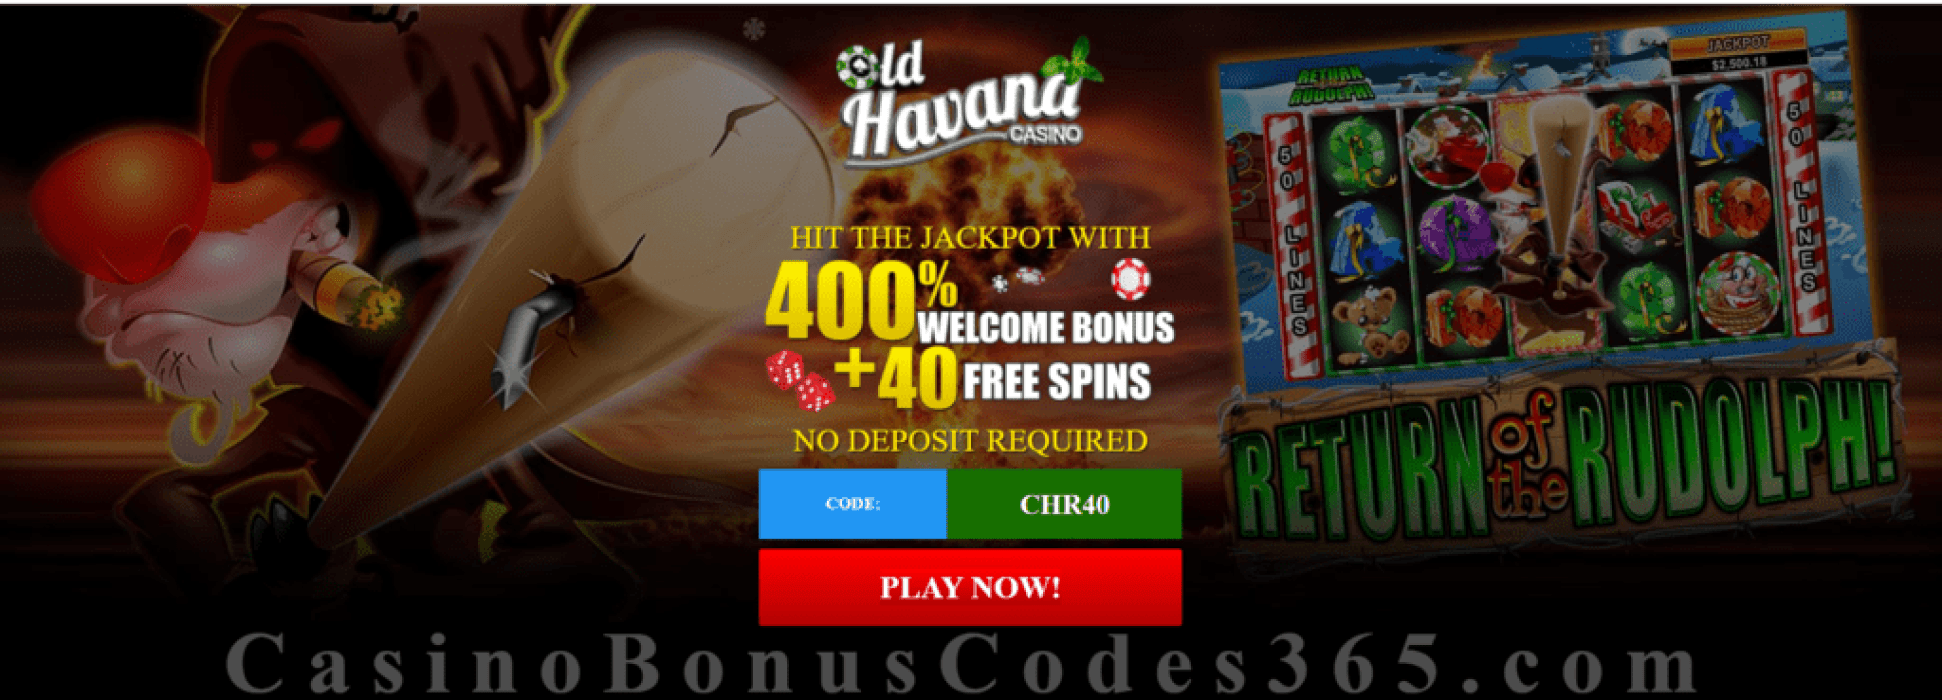 Old Havana Casino 400% Bonus plus 40 FREE RTG Return of the Rudolph Spins Special Thanksgiving Deal